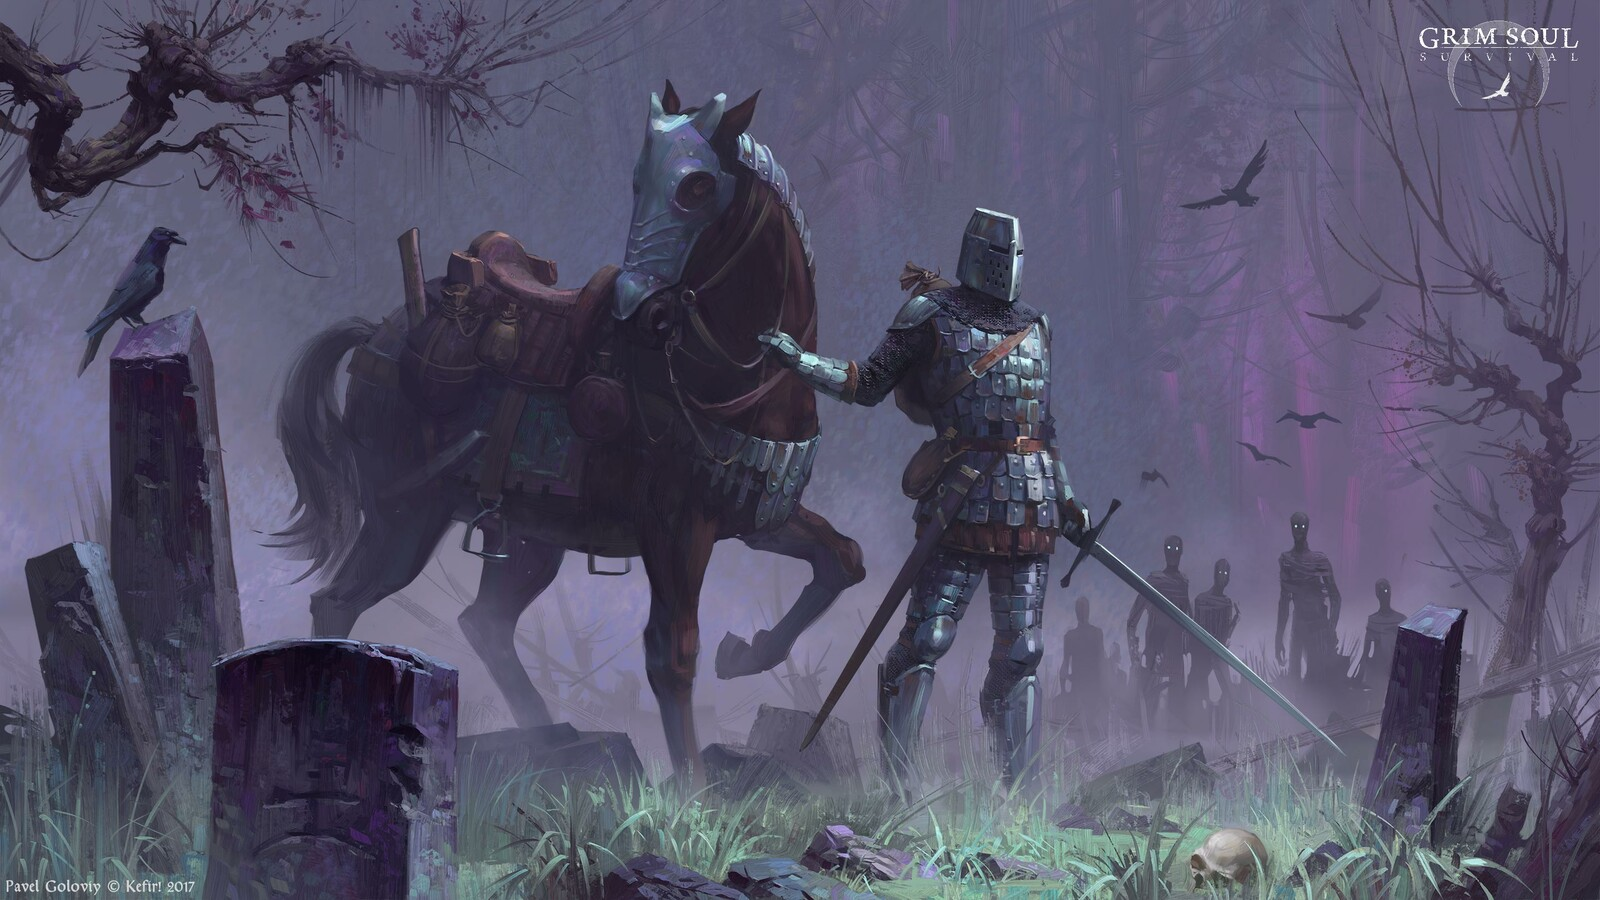 Final illustration that went into the game release.